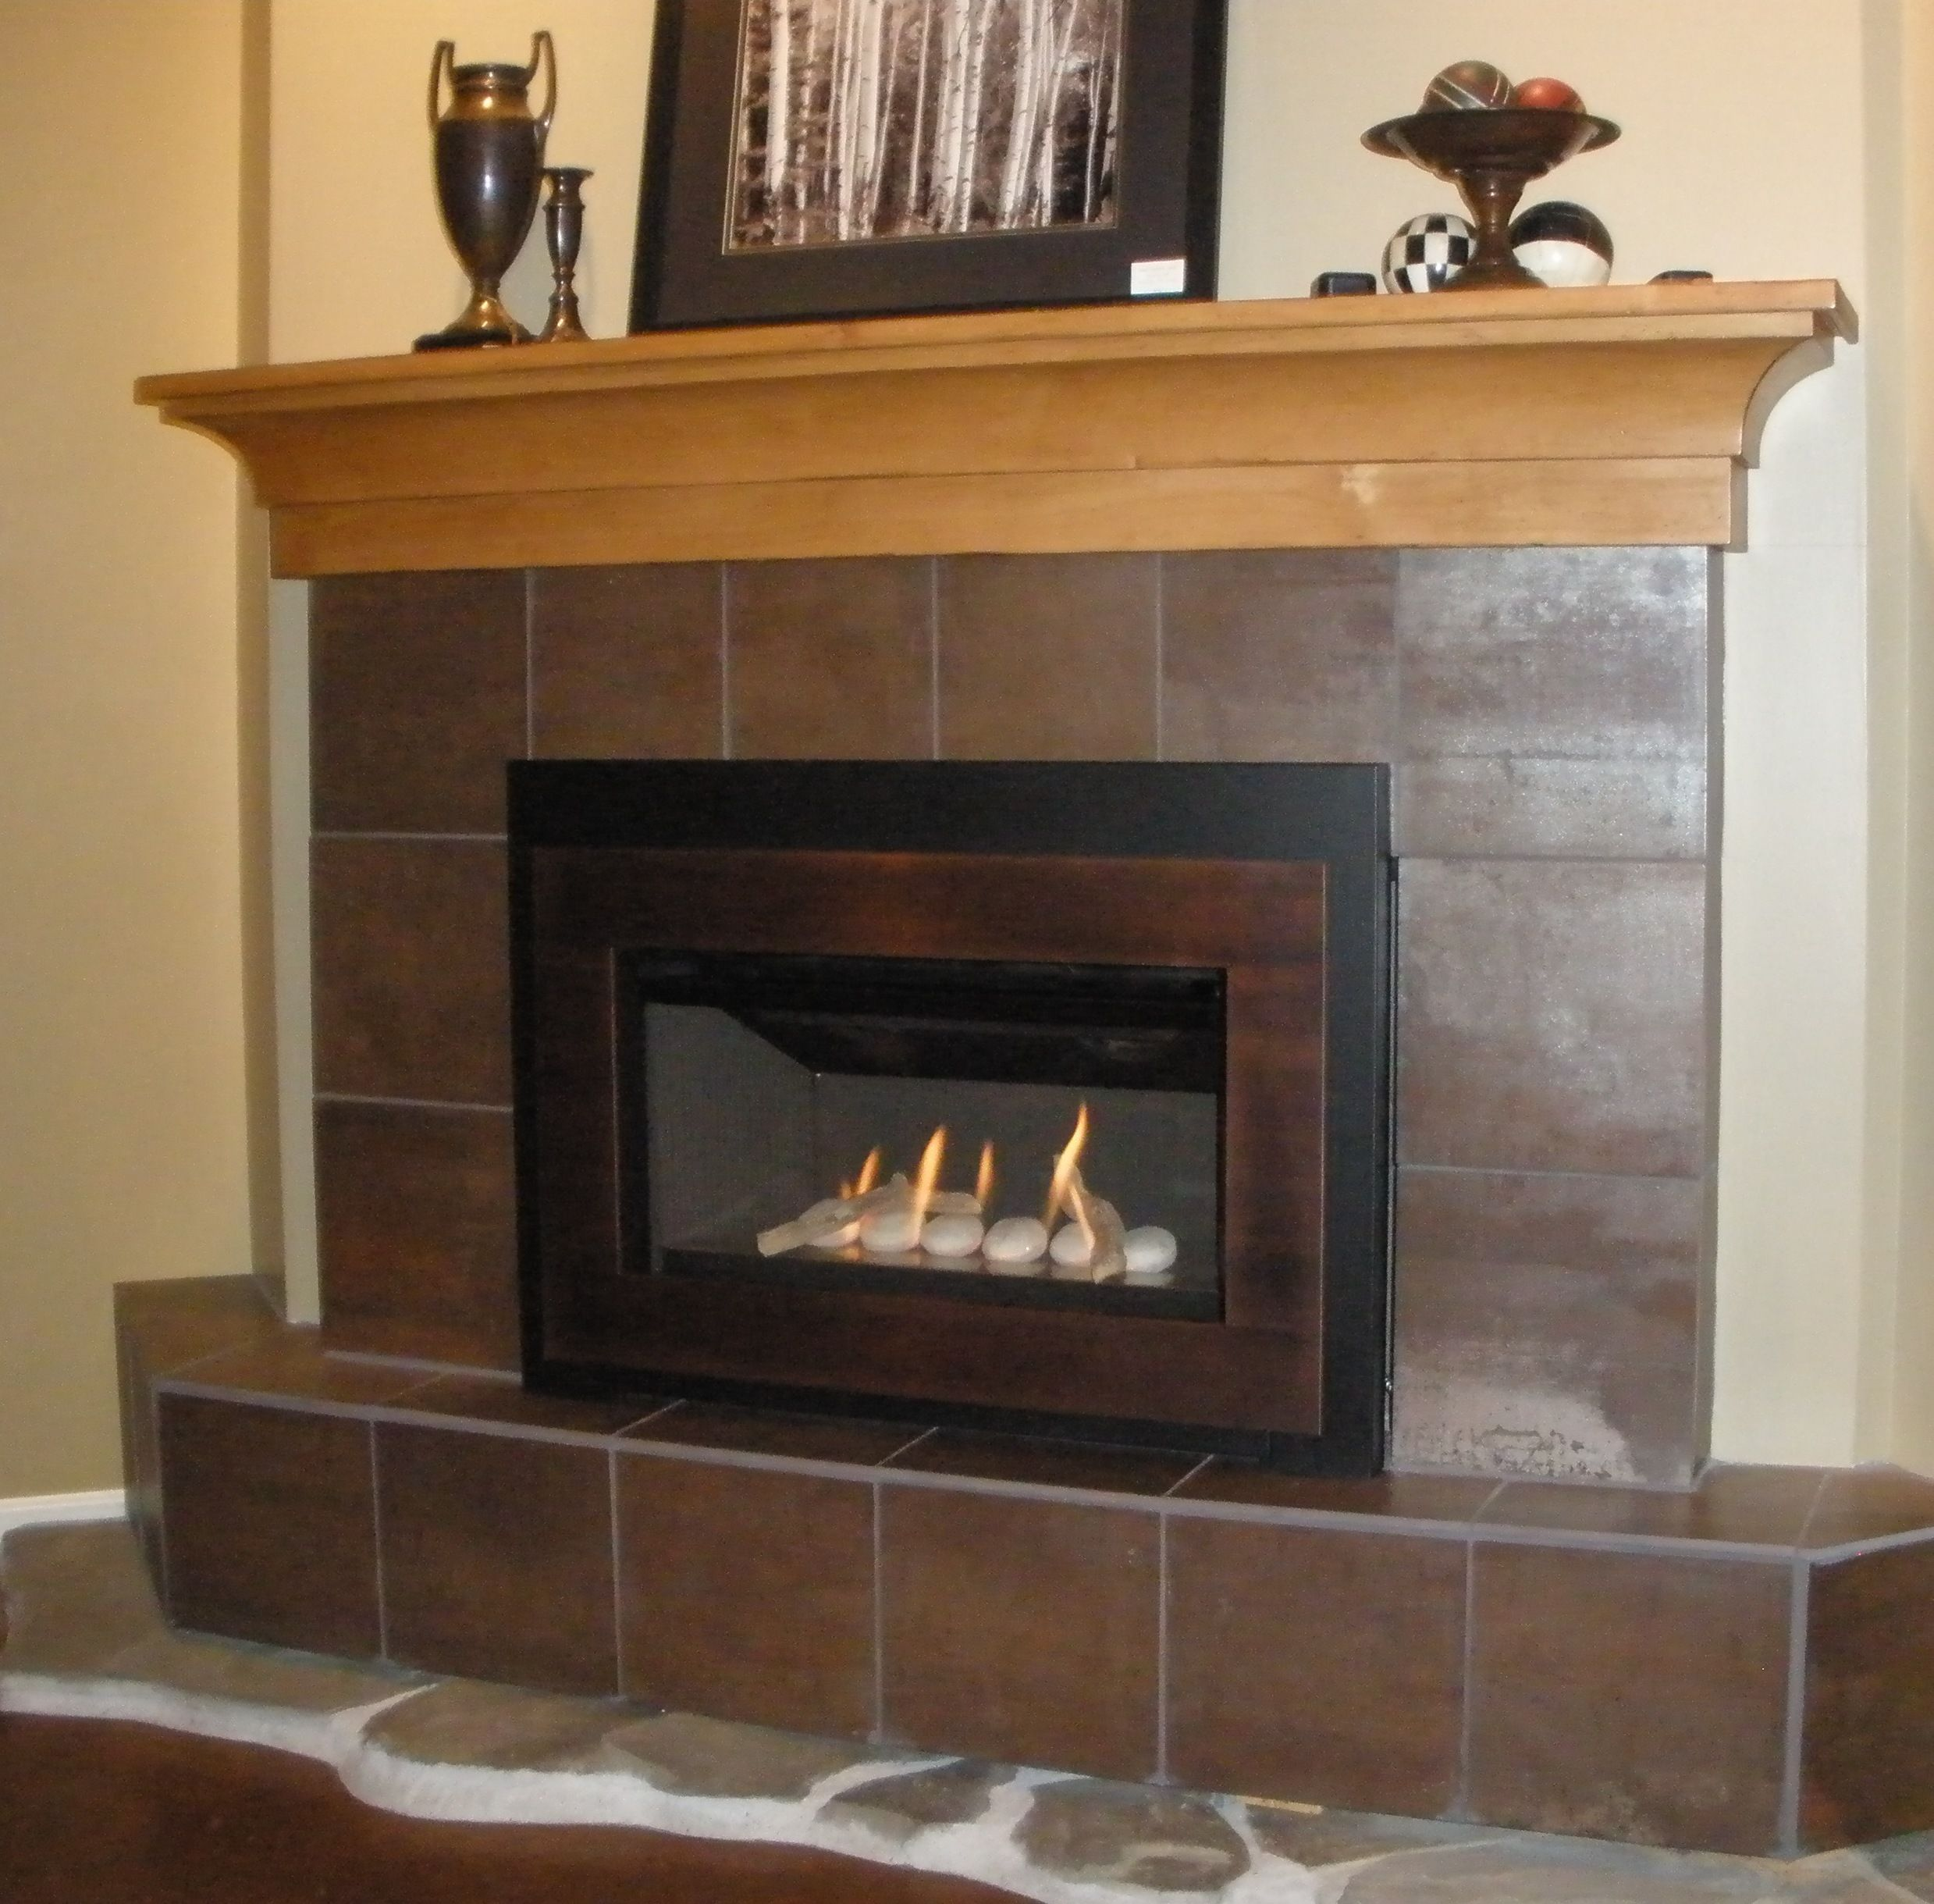 valor g3 739irn gas fireplace insert with creekside rock bed fire